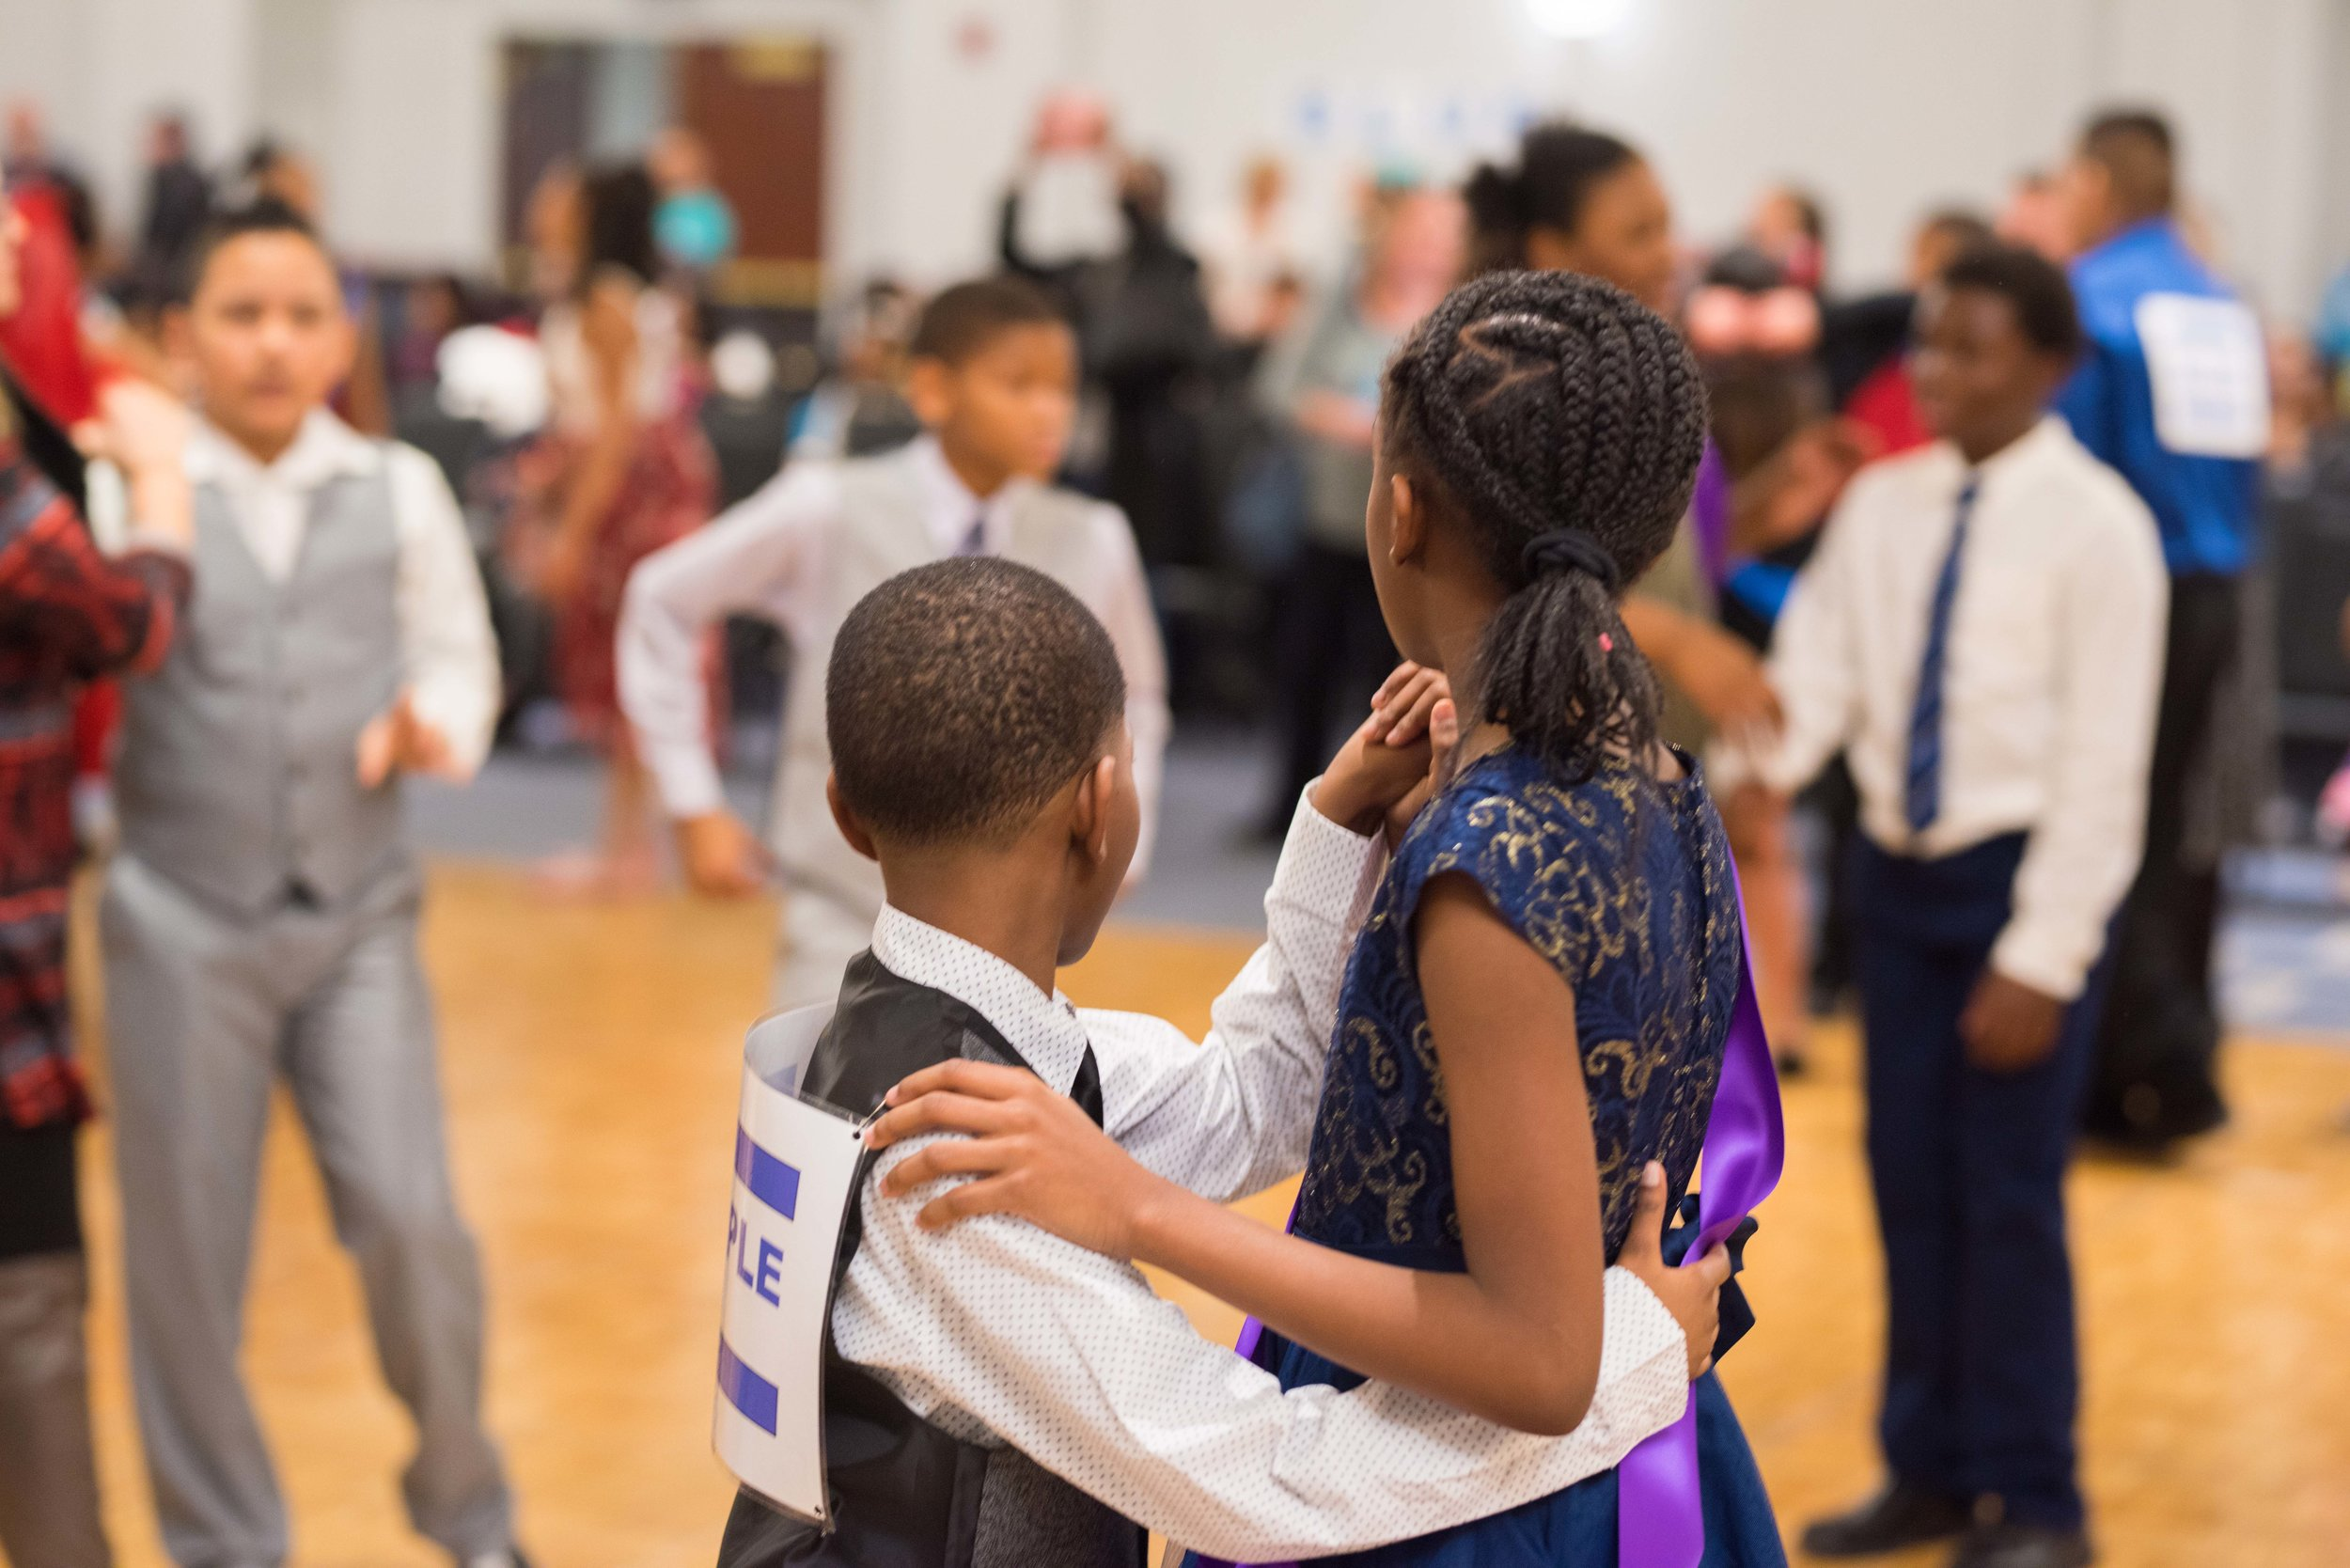 Mission - To transform lives through the physical, mental, and emotional benefits of partner dance.